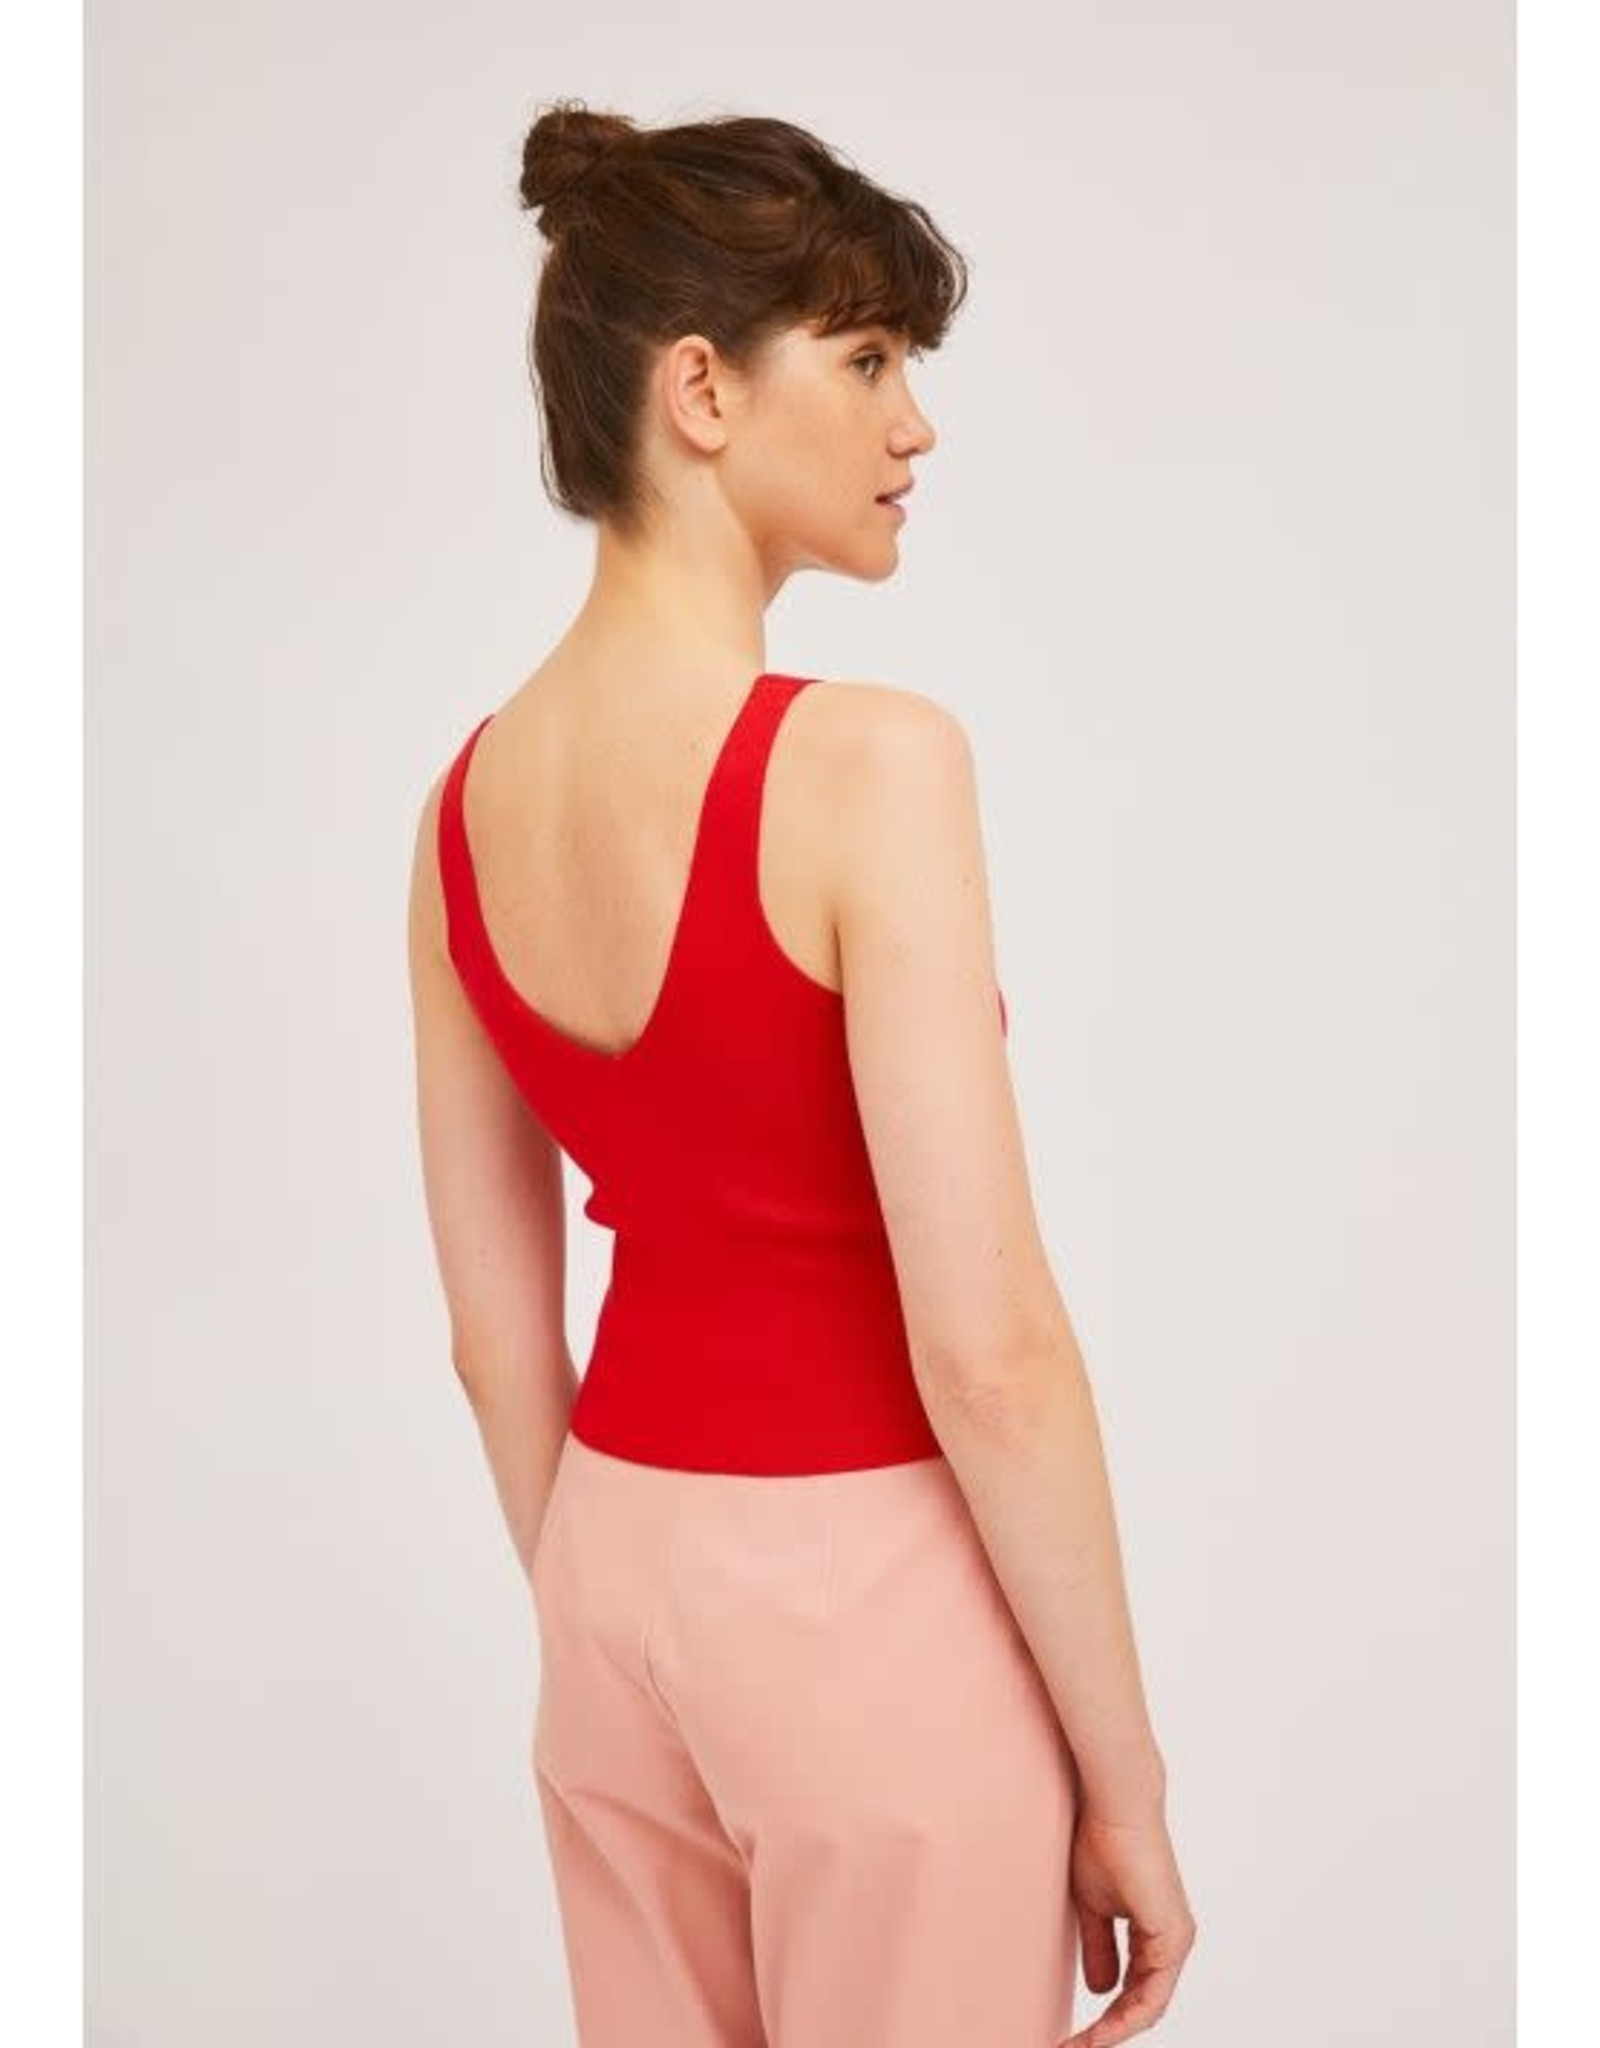 CIA - Sweater Tank in Red or Black